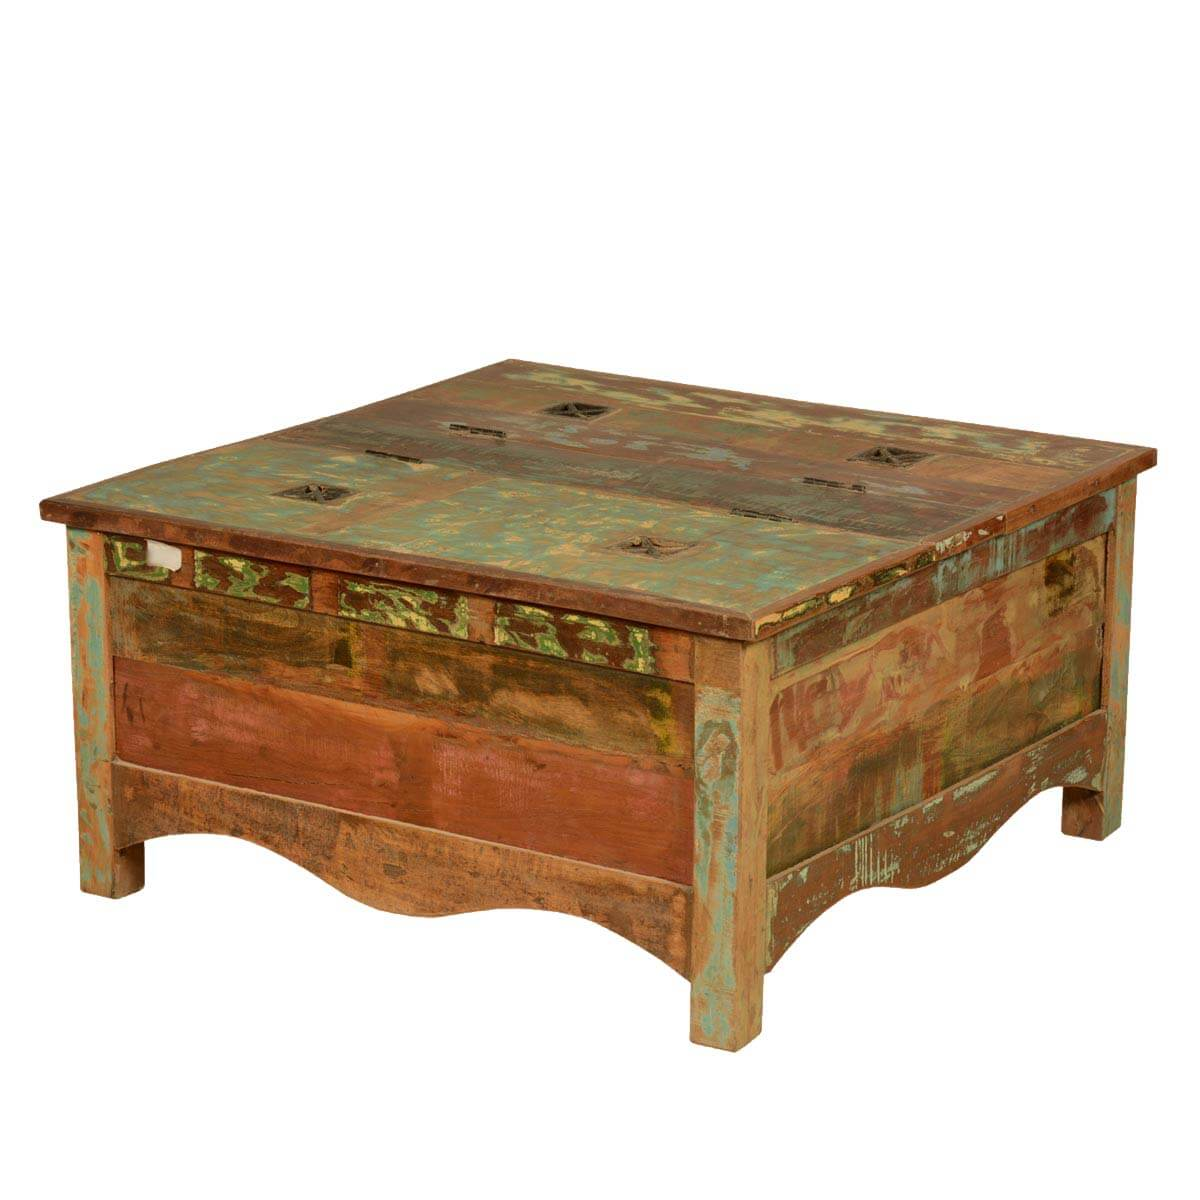 Boelus Rustic Reclaimed Wood Square Double Top Coffee